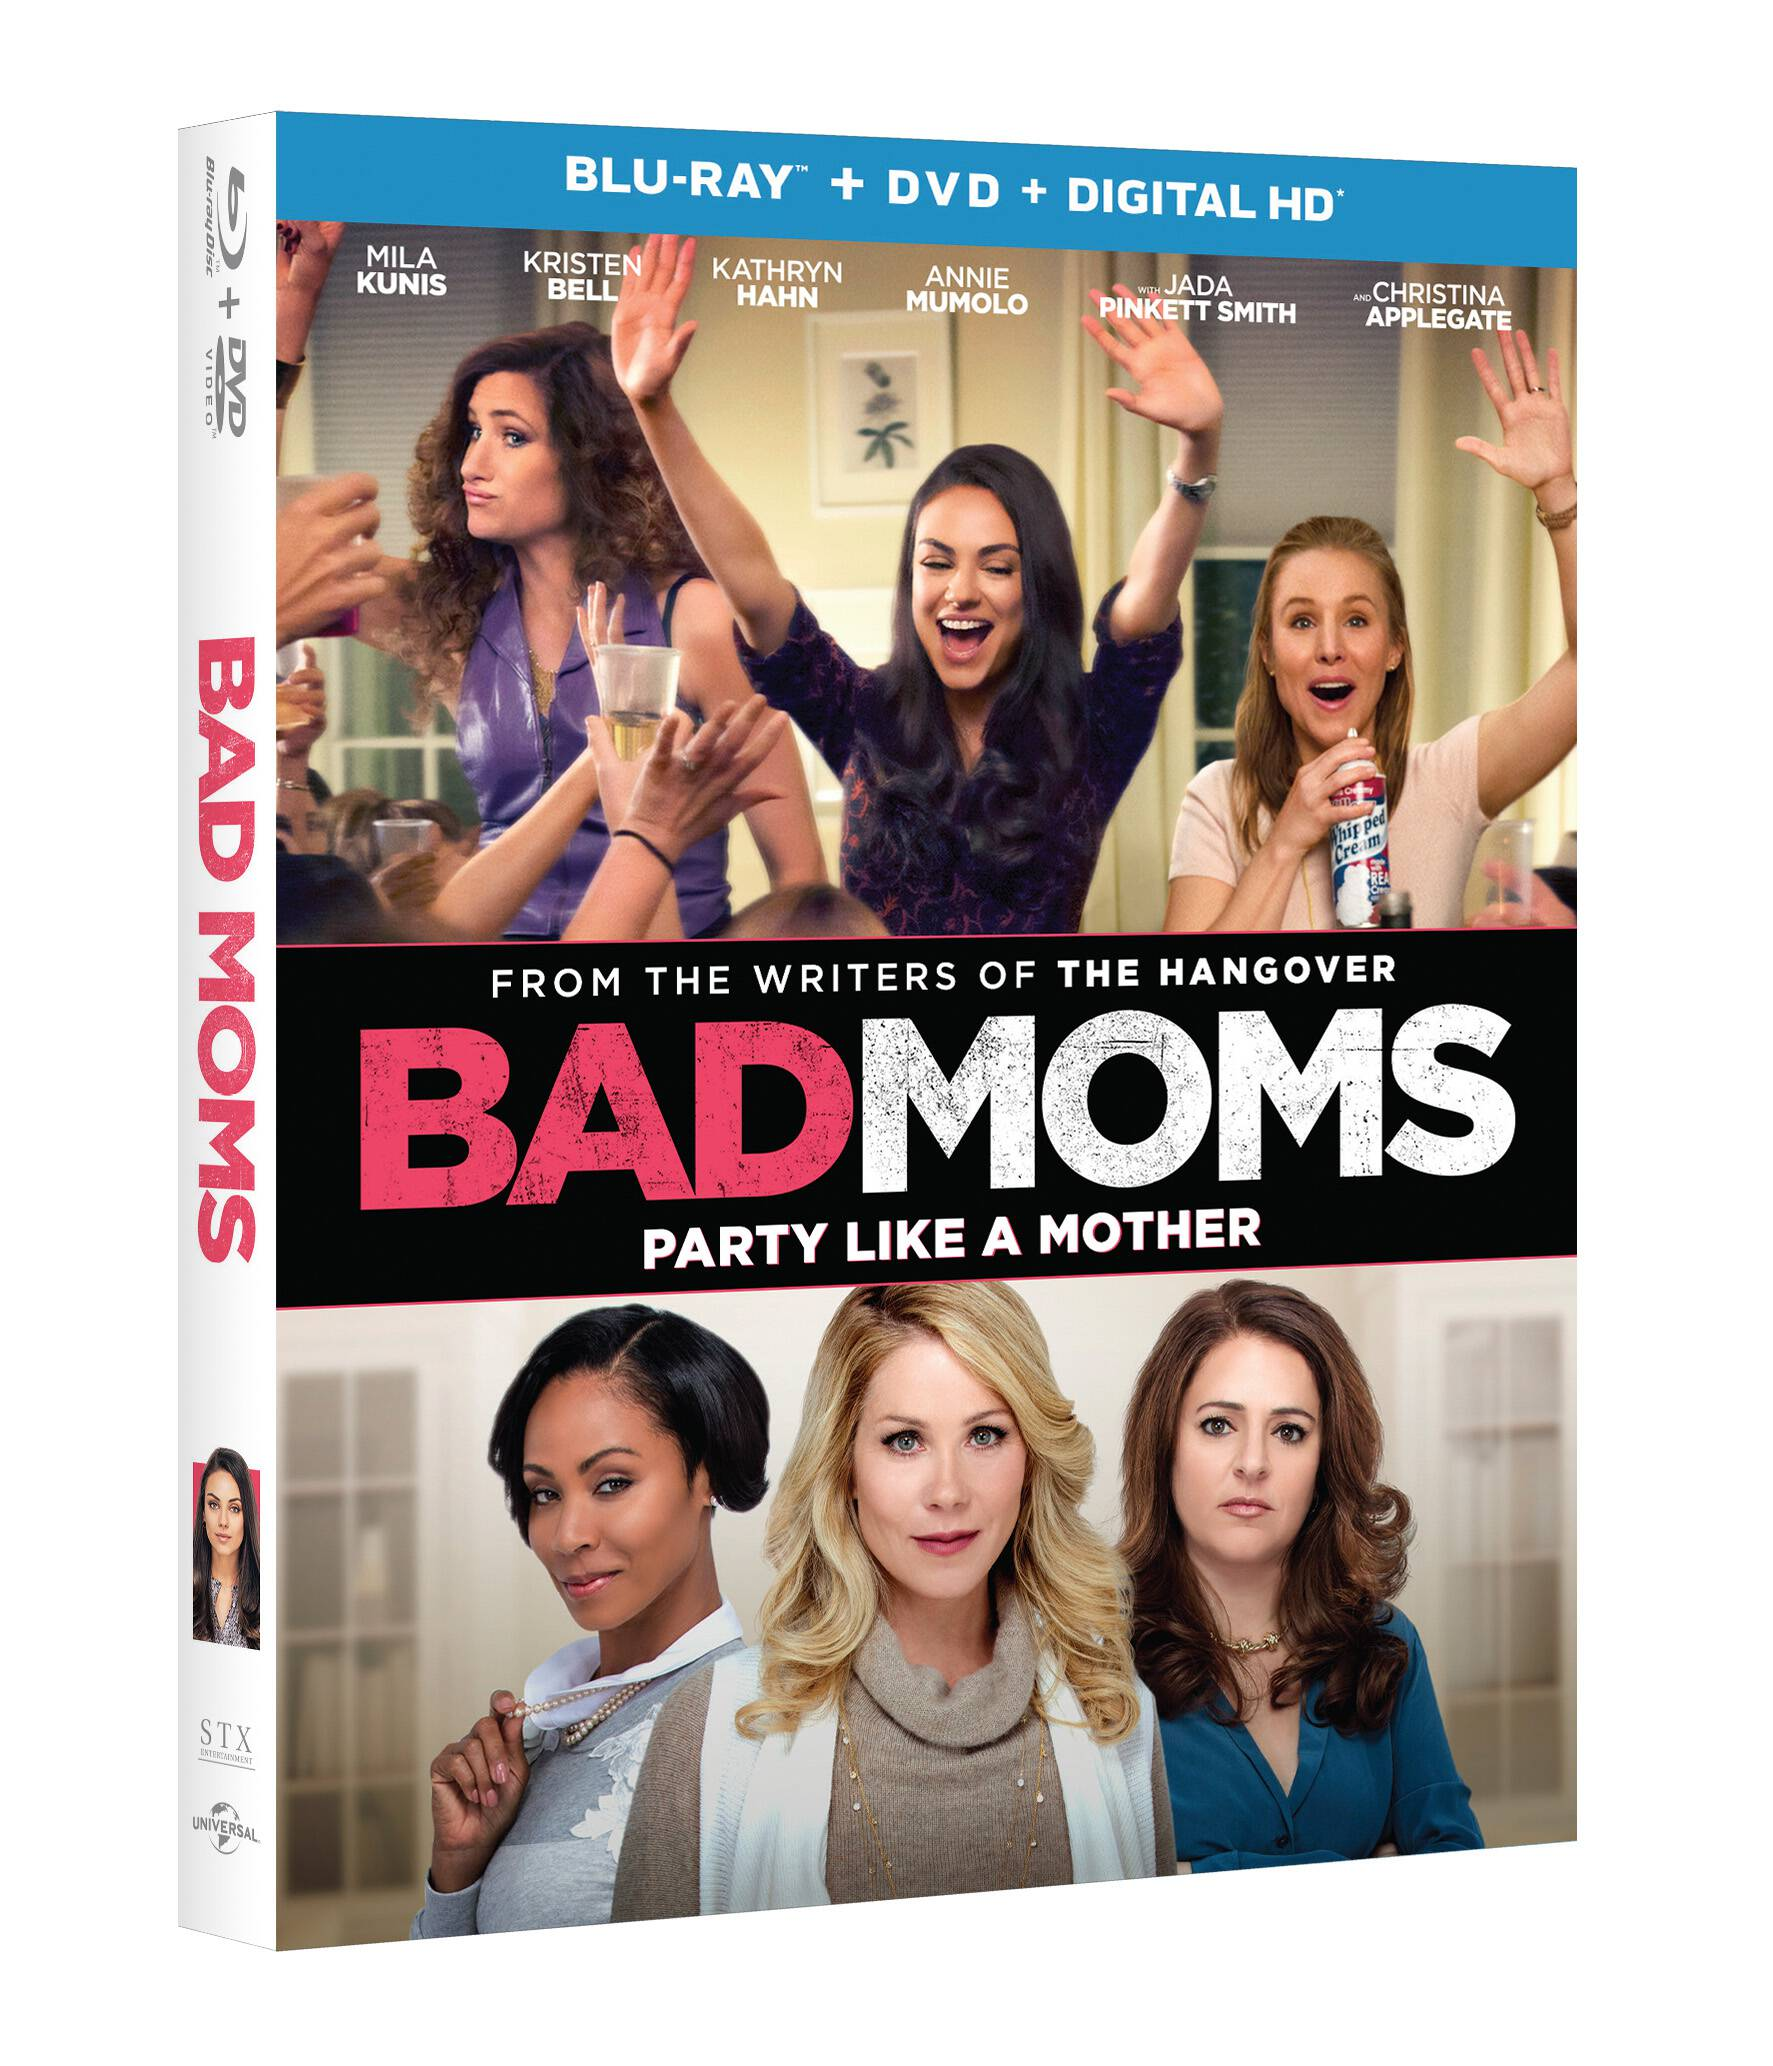 This hilarious movie is now available to own! Bad Moms On Blu-Ray, DVD, and Digital HD is out now so you can have a girls' night in any time!